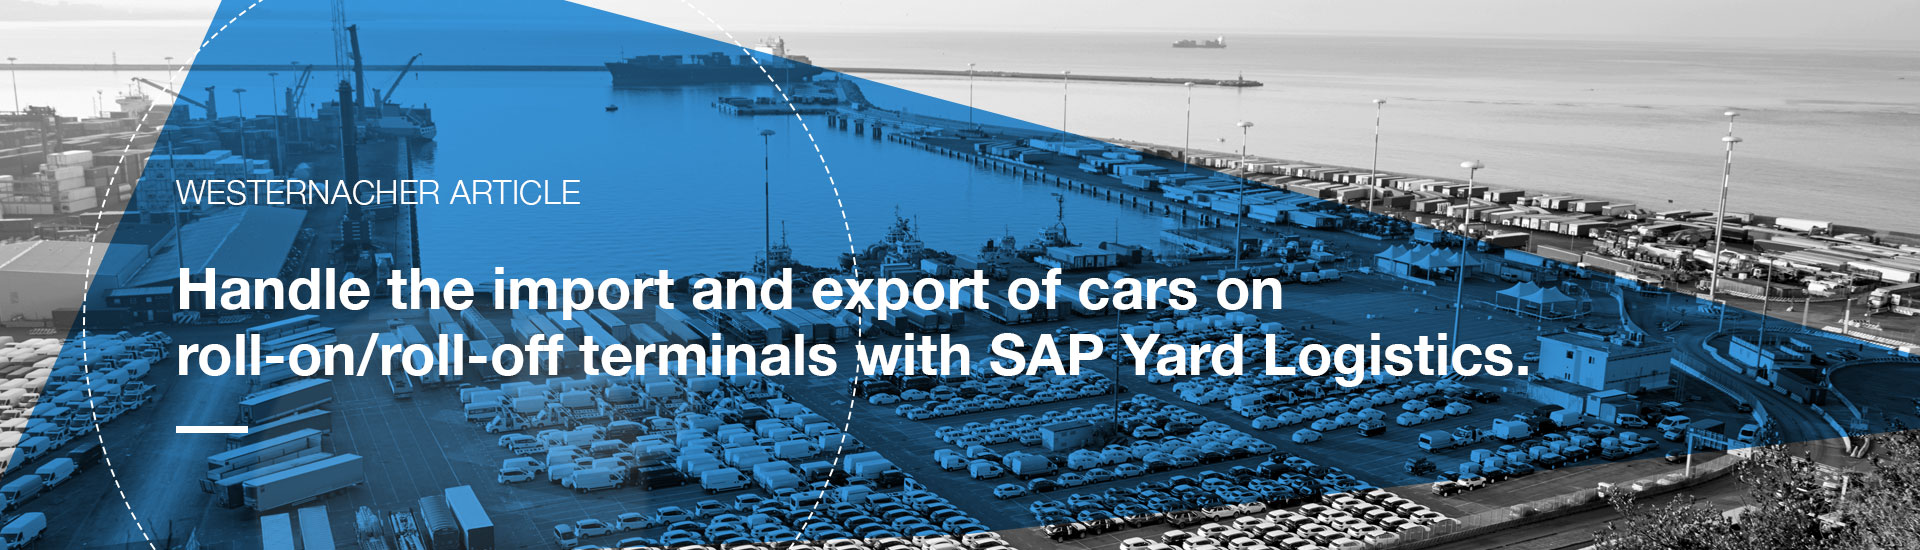 Car Yard – Handle the import and export of cars on roll-on/roll-off terminals with SAP Yard Logistics | westernacher-consulting.com